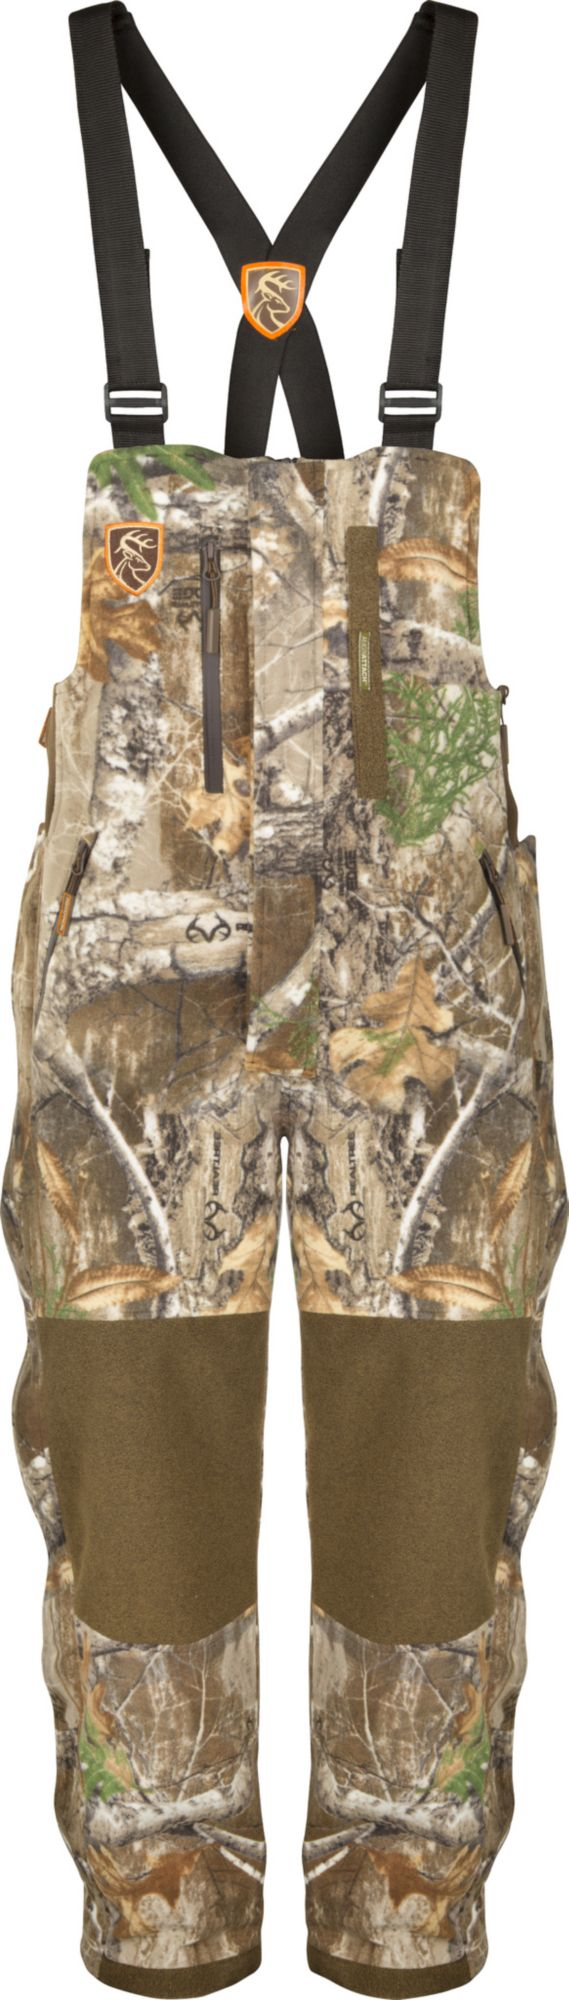 Drake Waterfowl Men's Non-Typical HydroHush Heavyweight Bibs with Agion Active XL, Size: Small, Real Tree Edge thumbnail